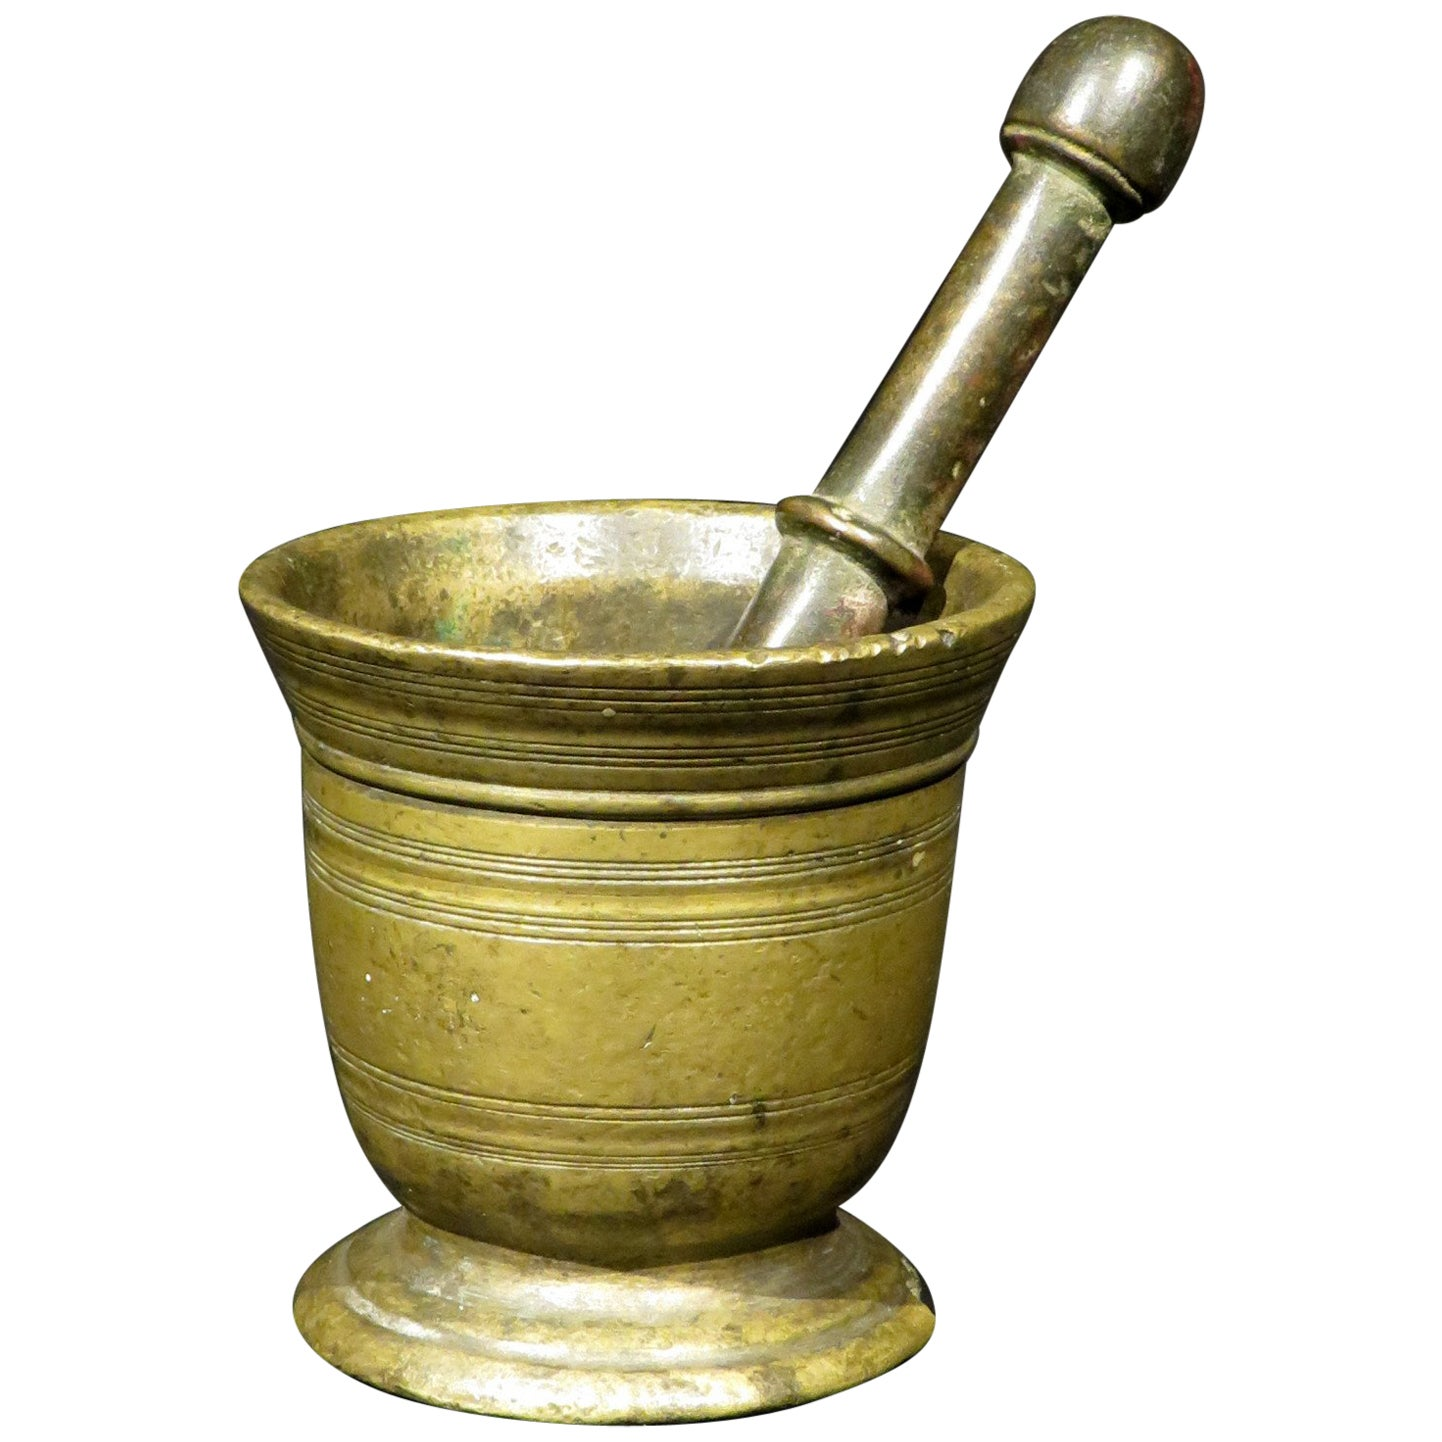 Small 19th Century Bronze Apothecary Mortar & Pestle, Continental Circa 1800